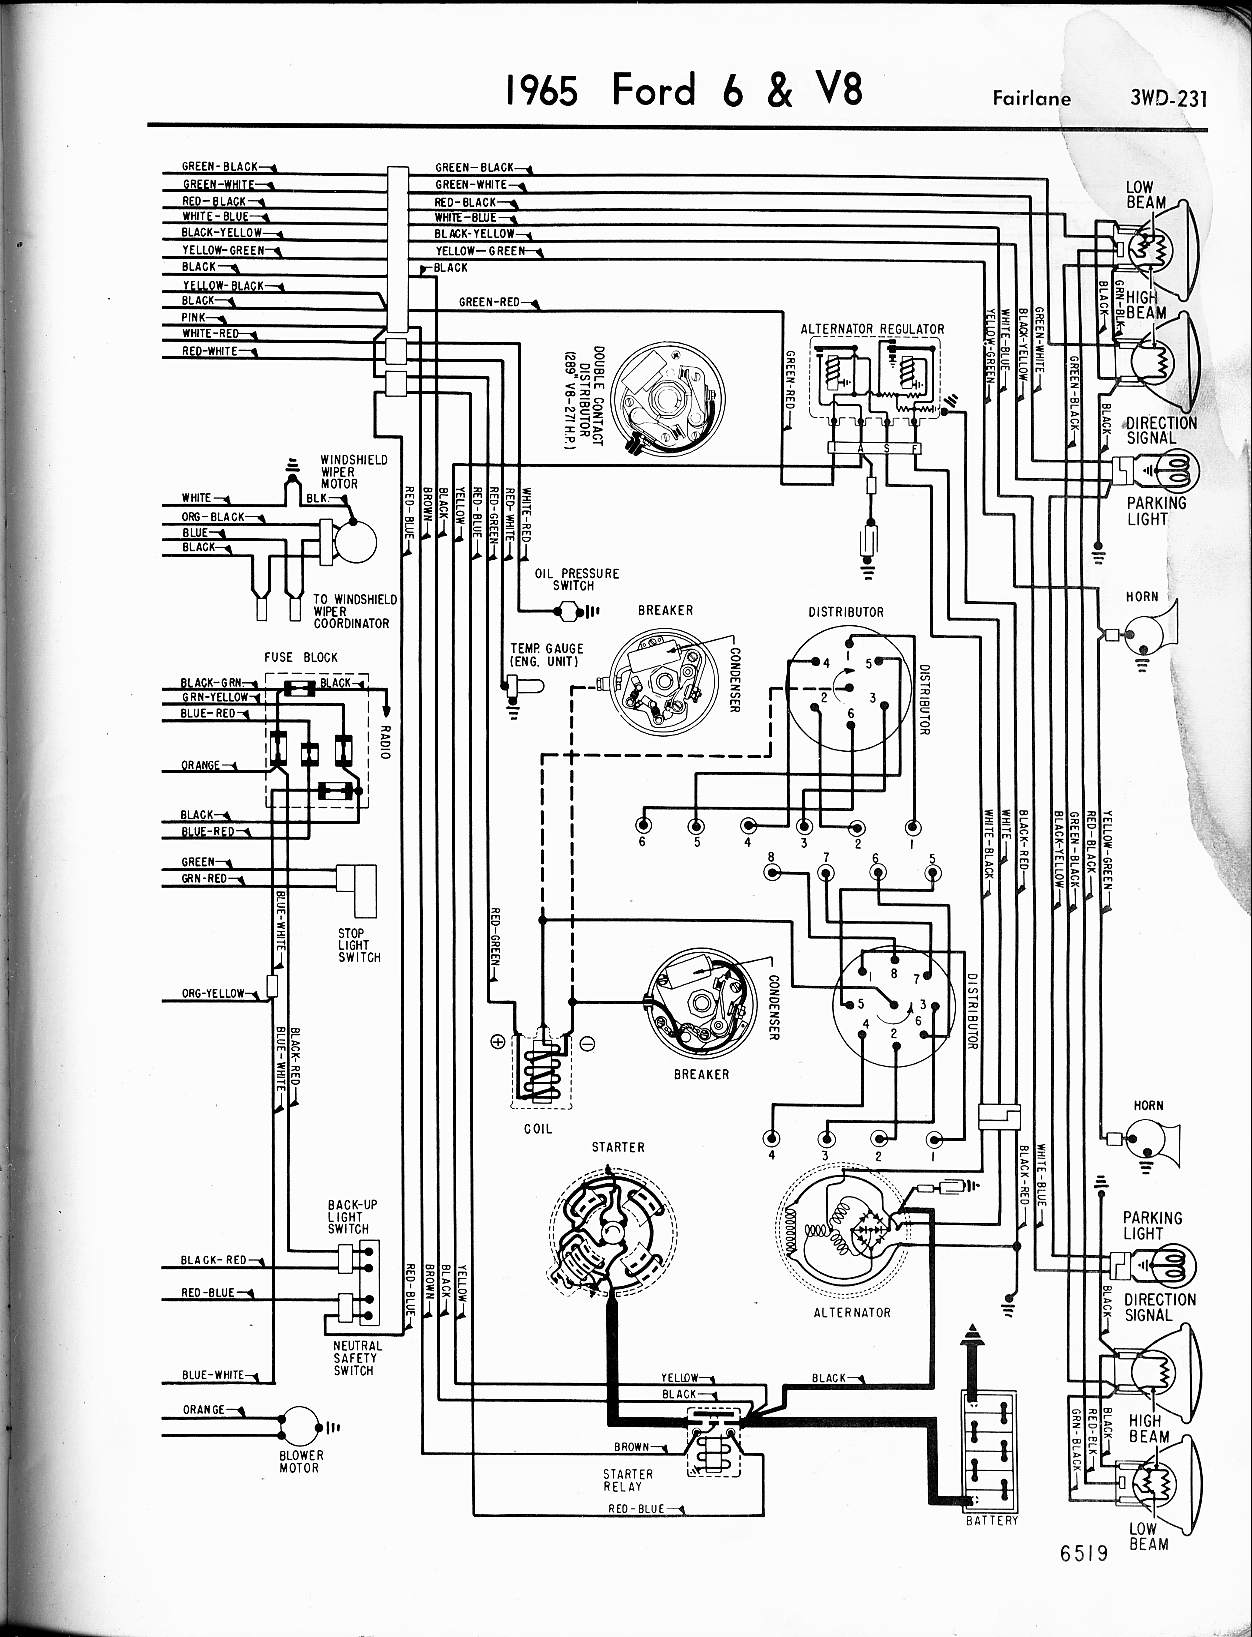 MWire5765 231 57 65 ford wiring diagrams bf falcon wiring diagram at fashall.co